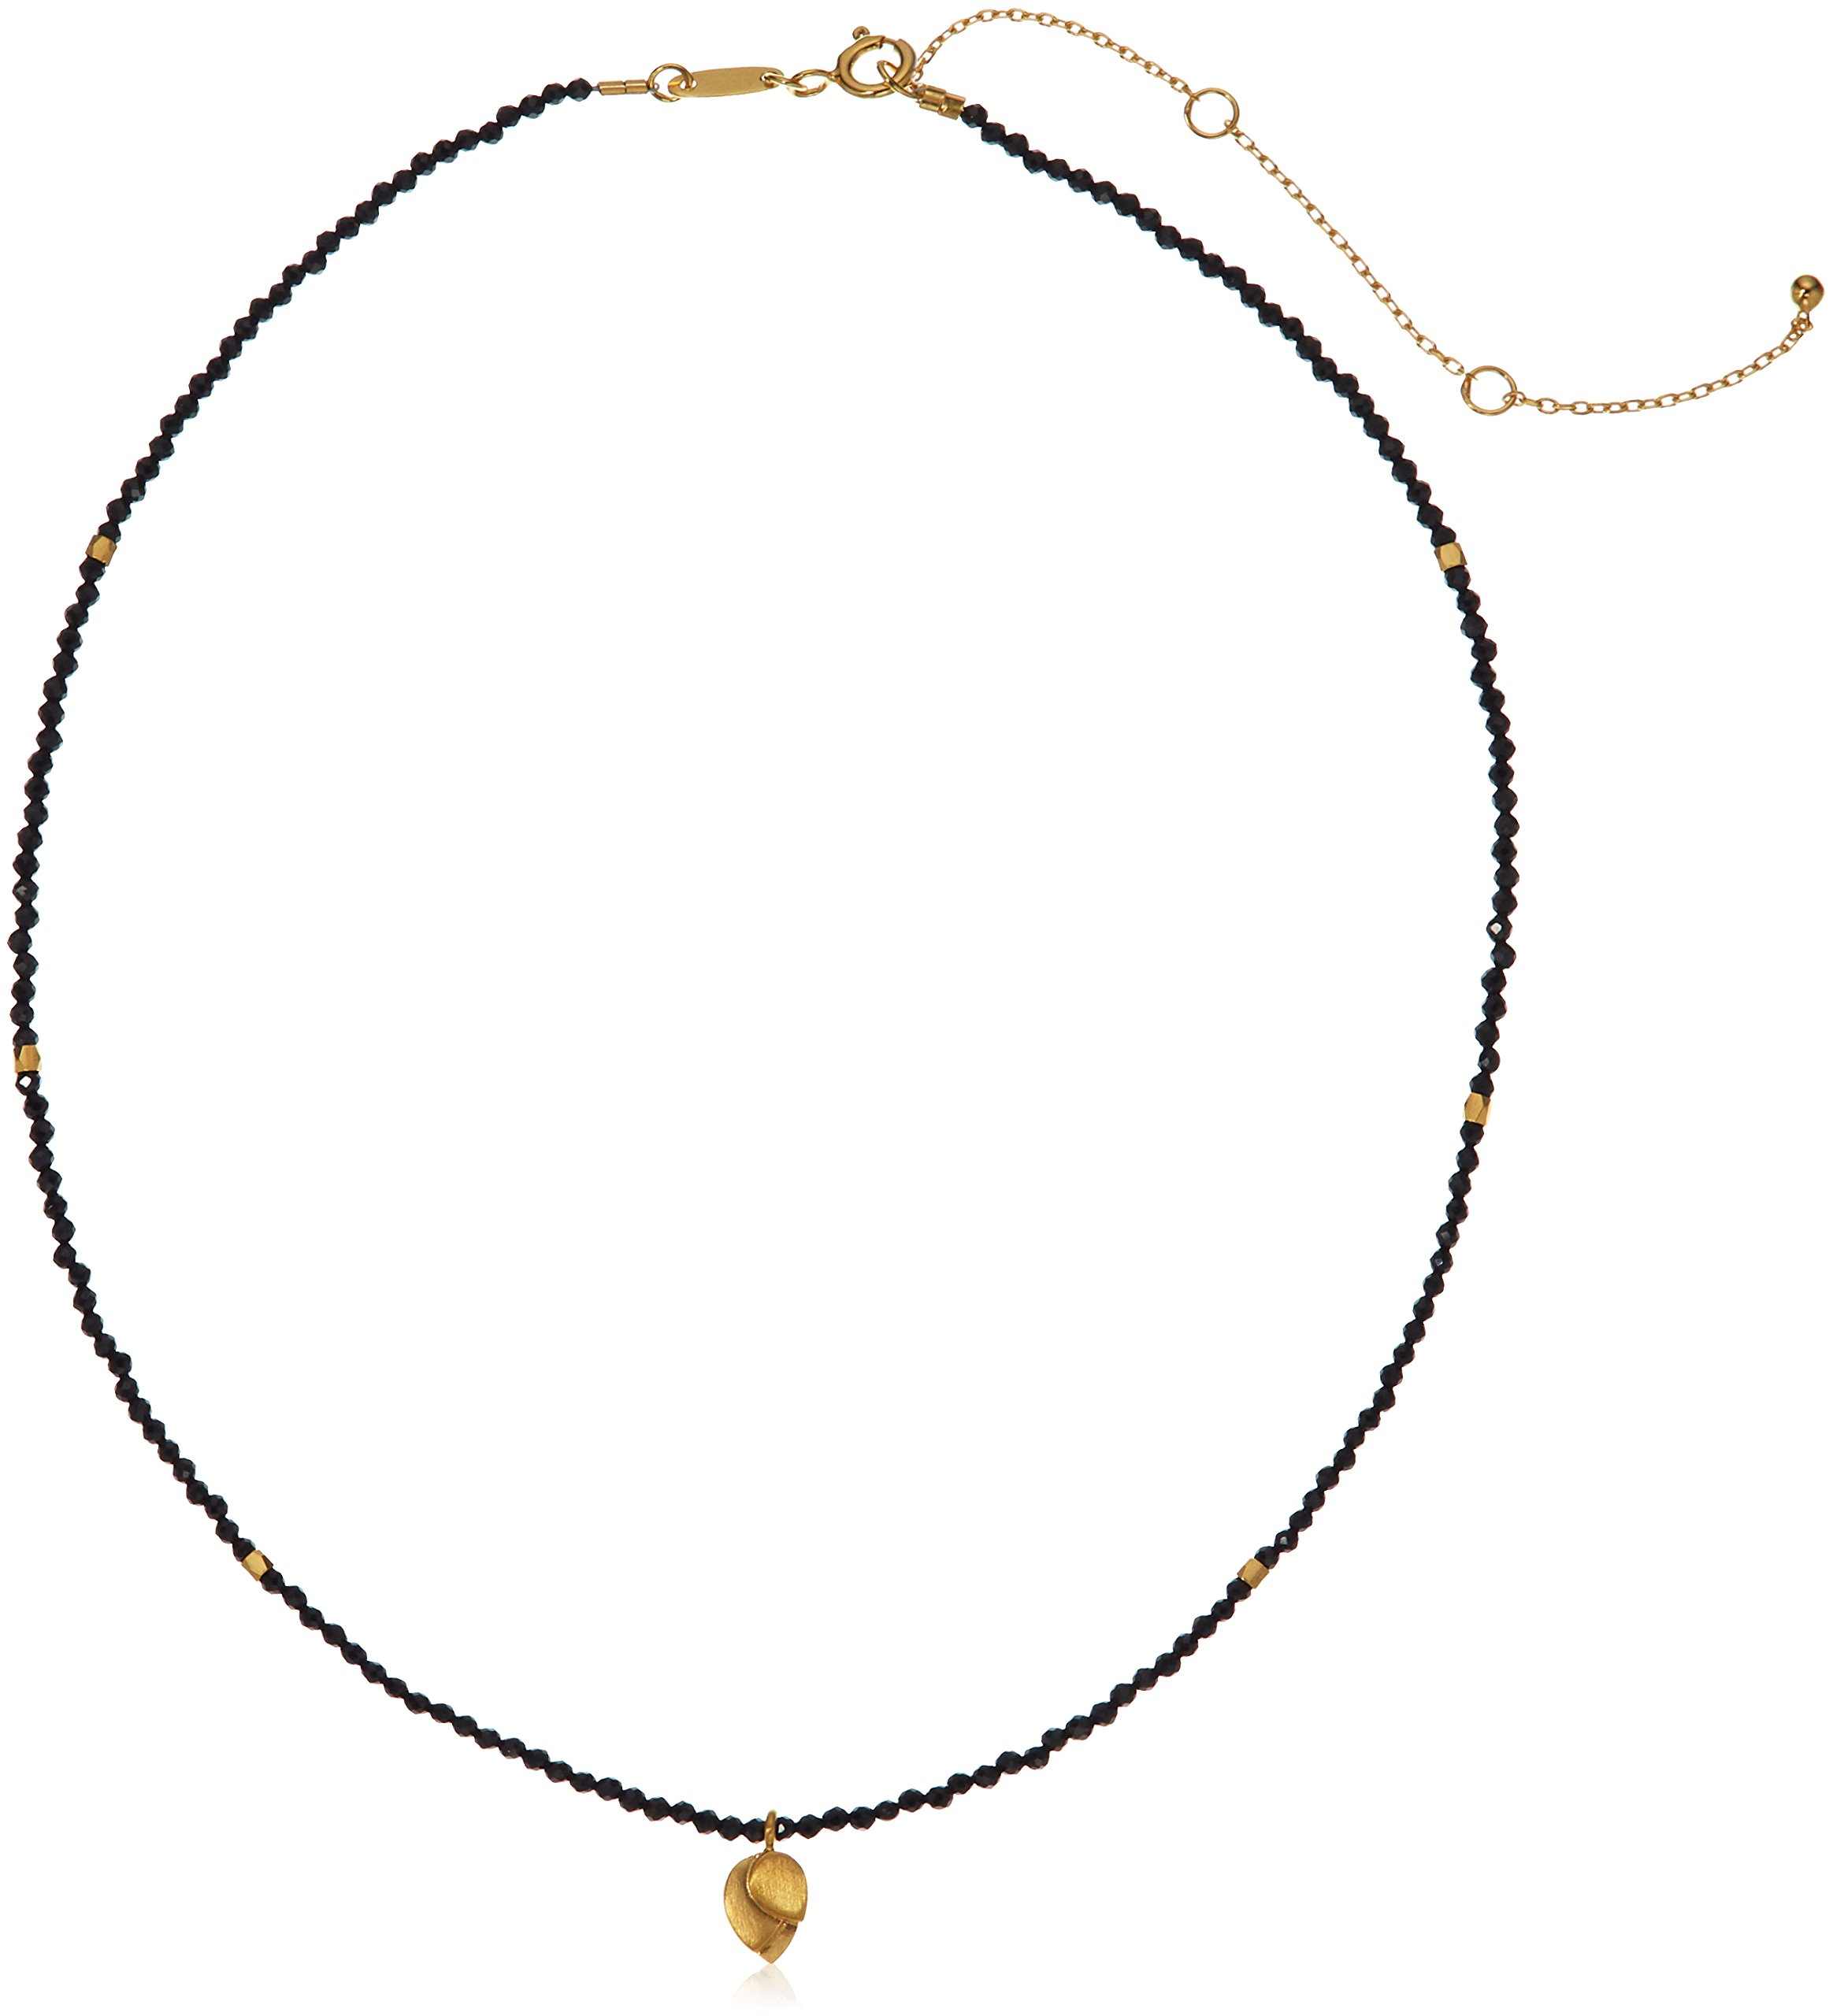 Satya Jewelry Black Onyx Gold Plated Lotus Choker Necklace, 14'' + 3.5'' Extender